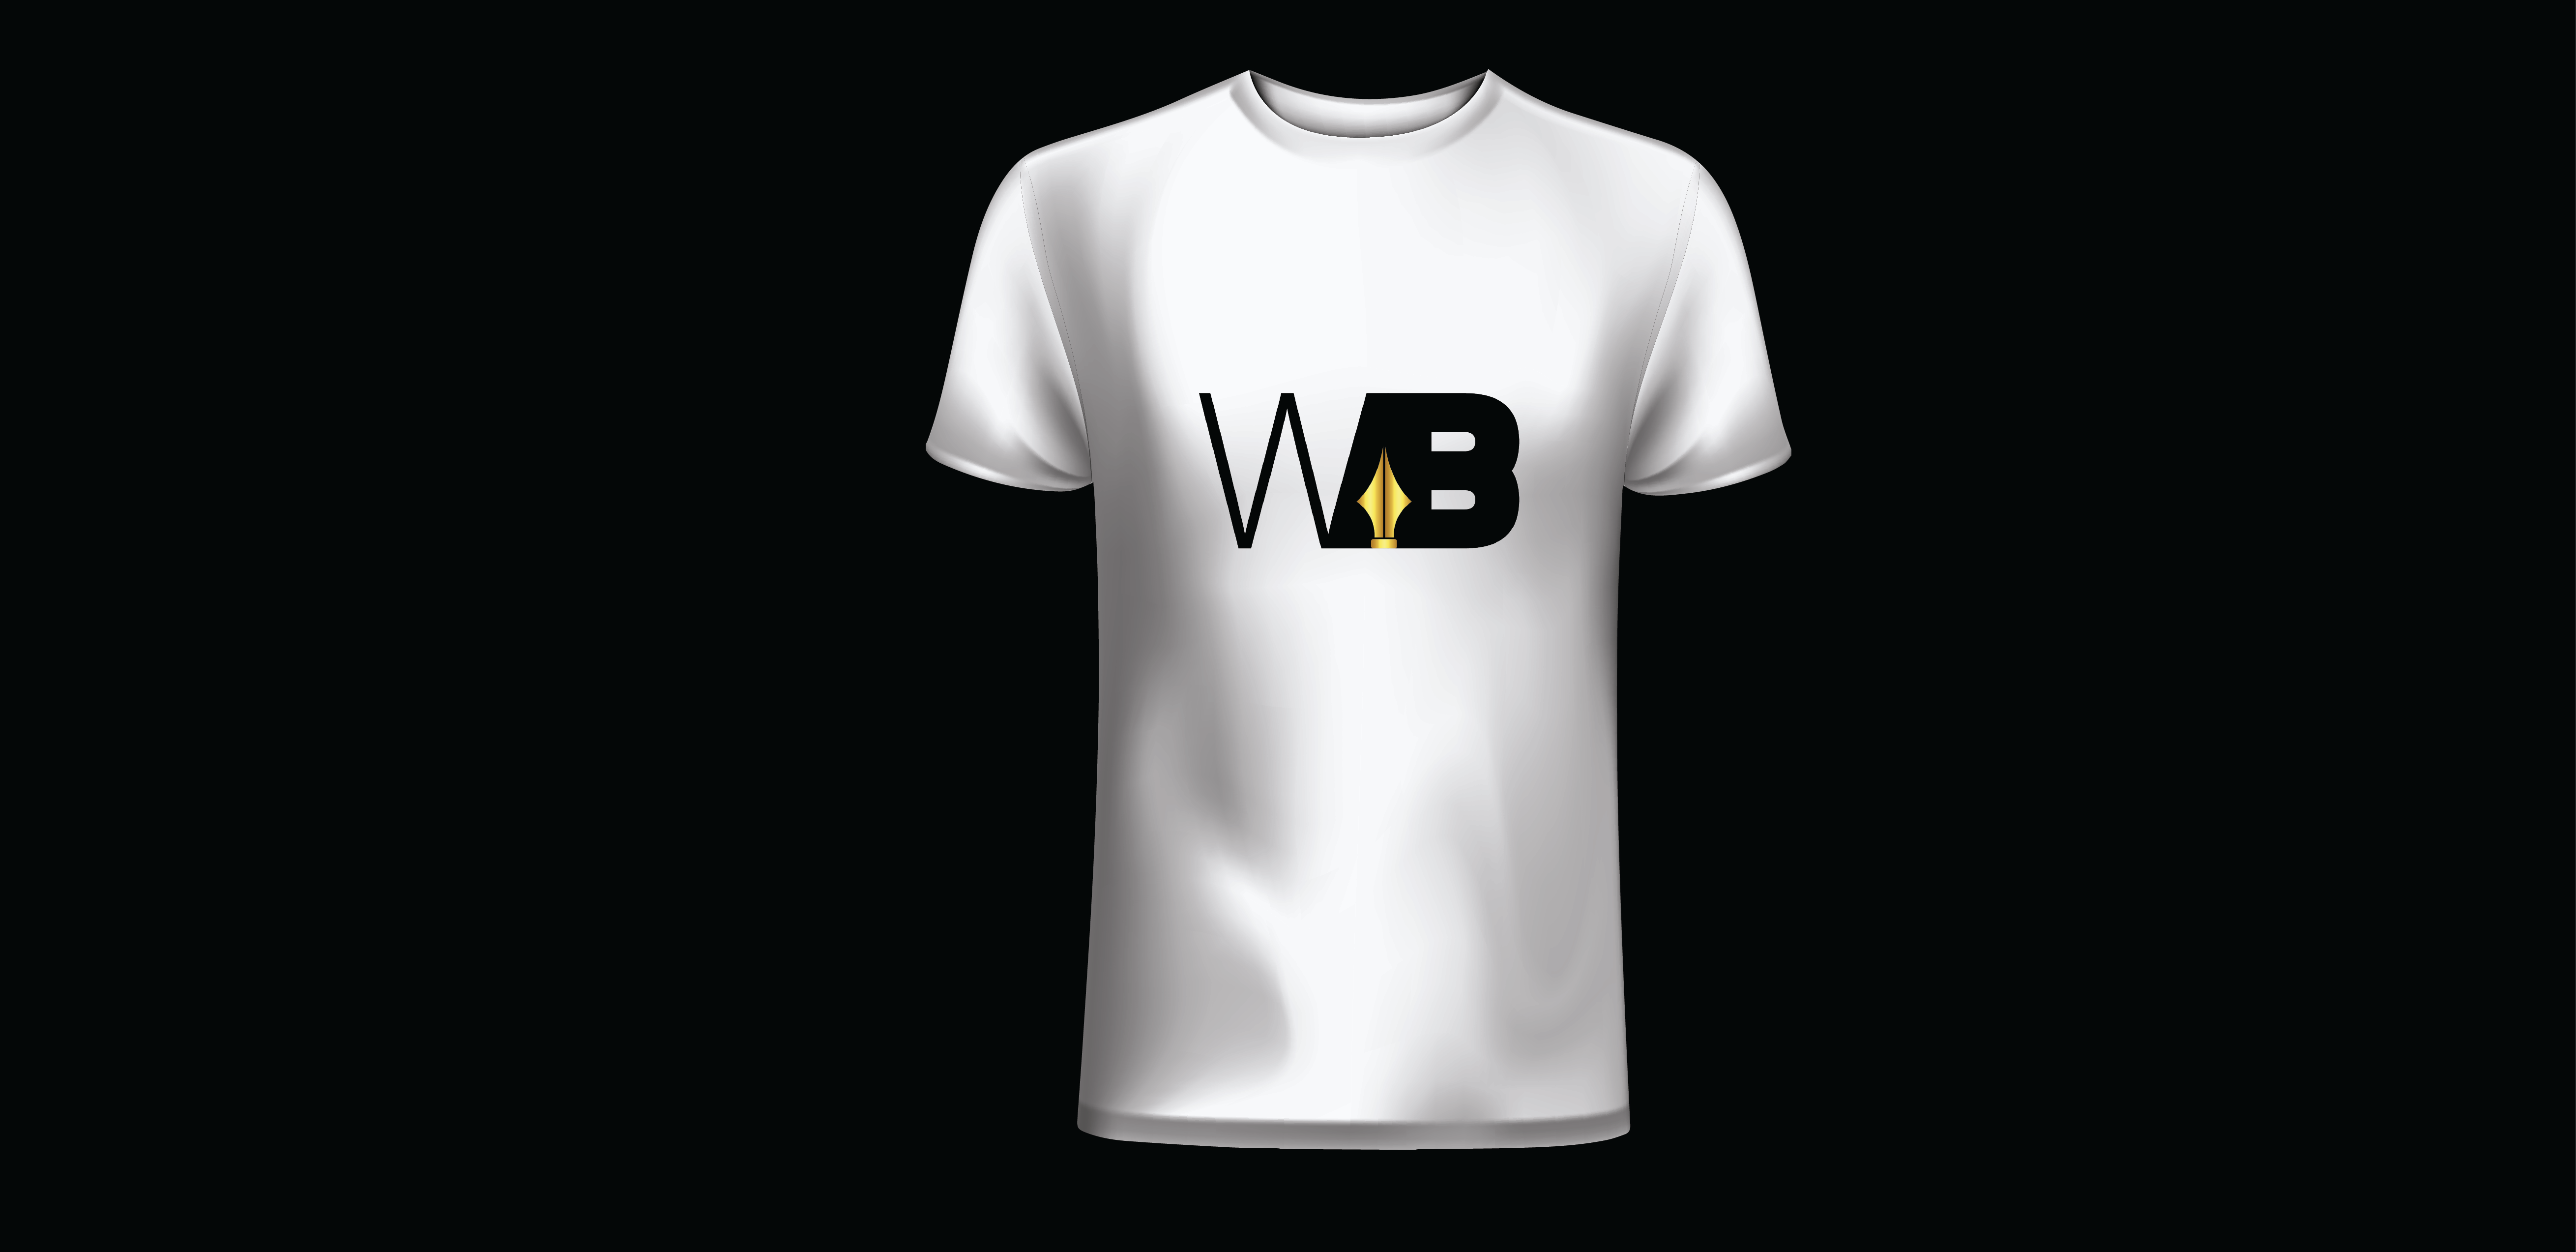 https://writrzblock.com/wp-content/uploads/2019/10/tshirt-mockup.png